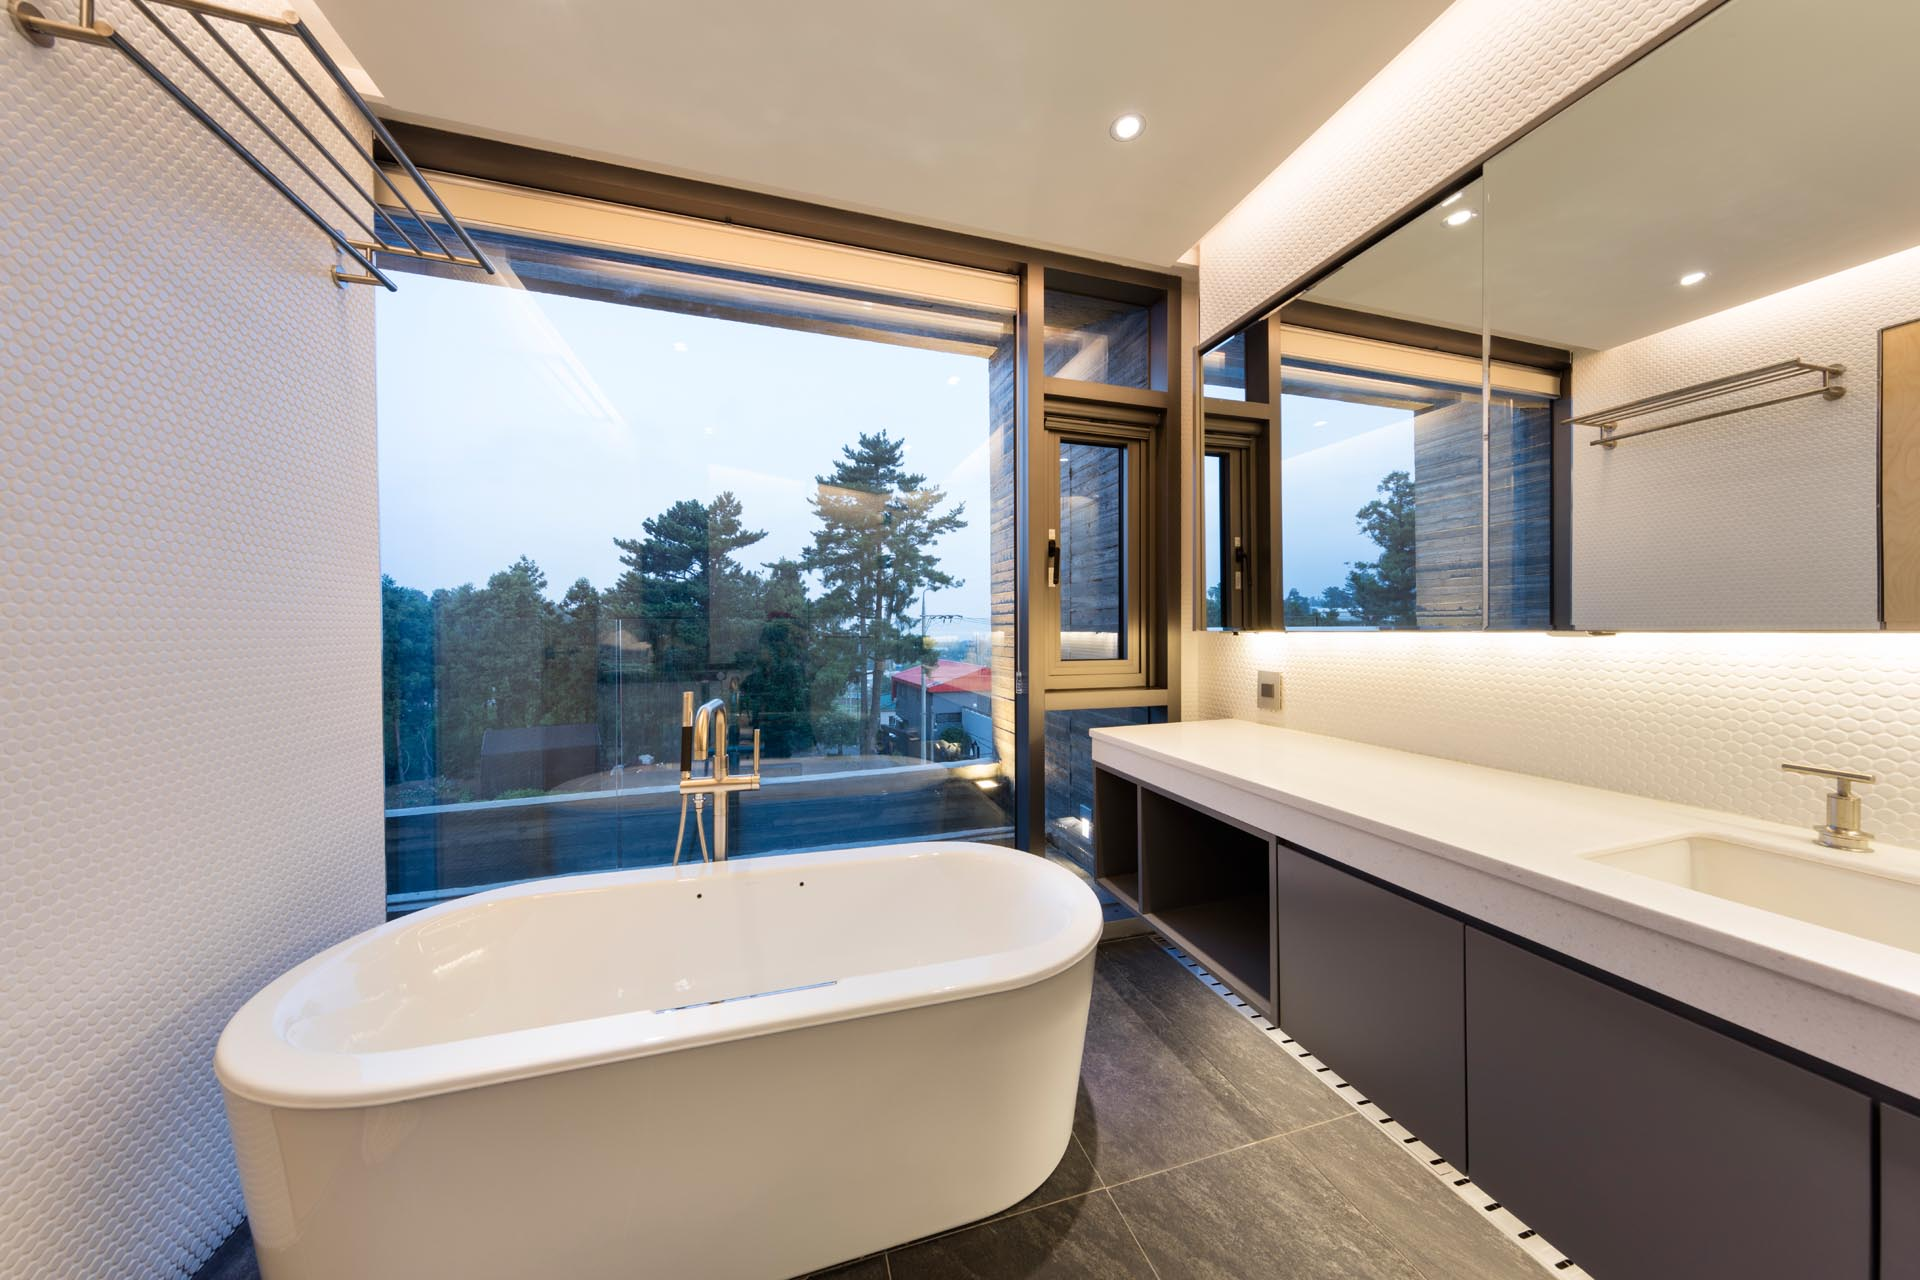 A modern bathroom with a freestanding bathtub and a large picture window.